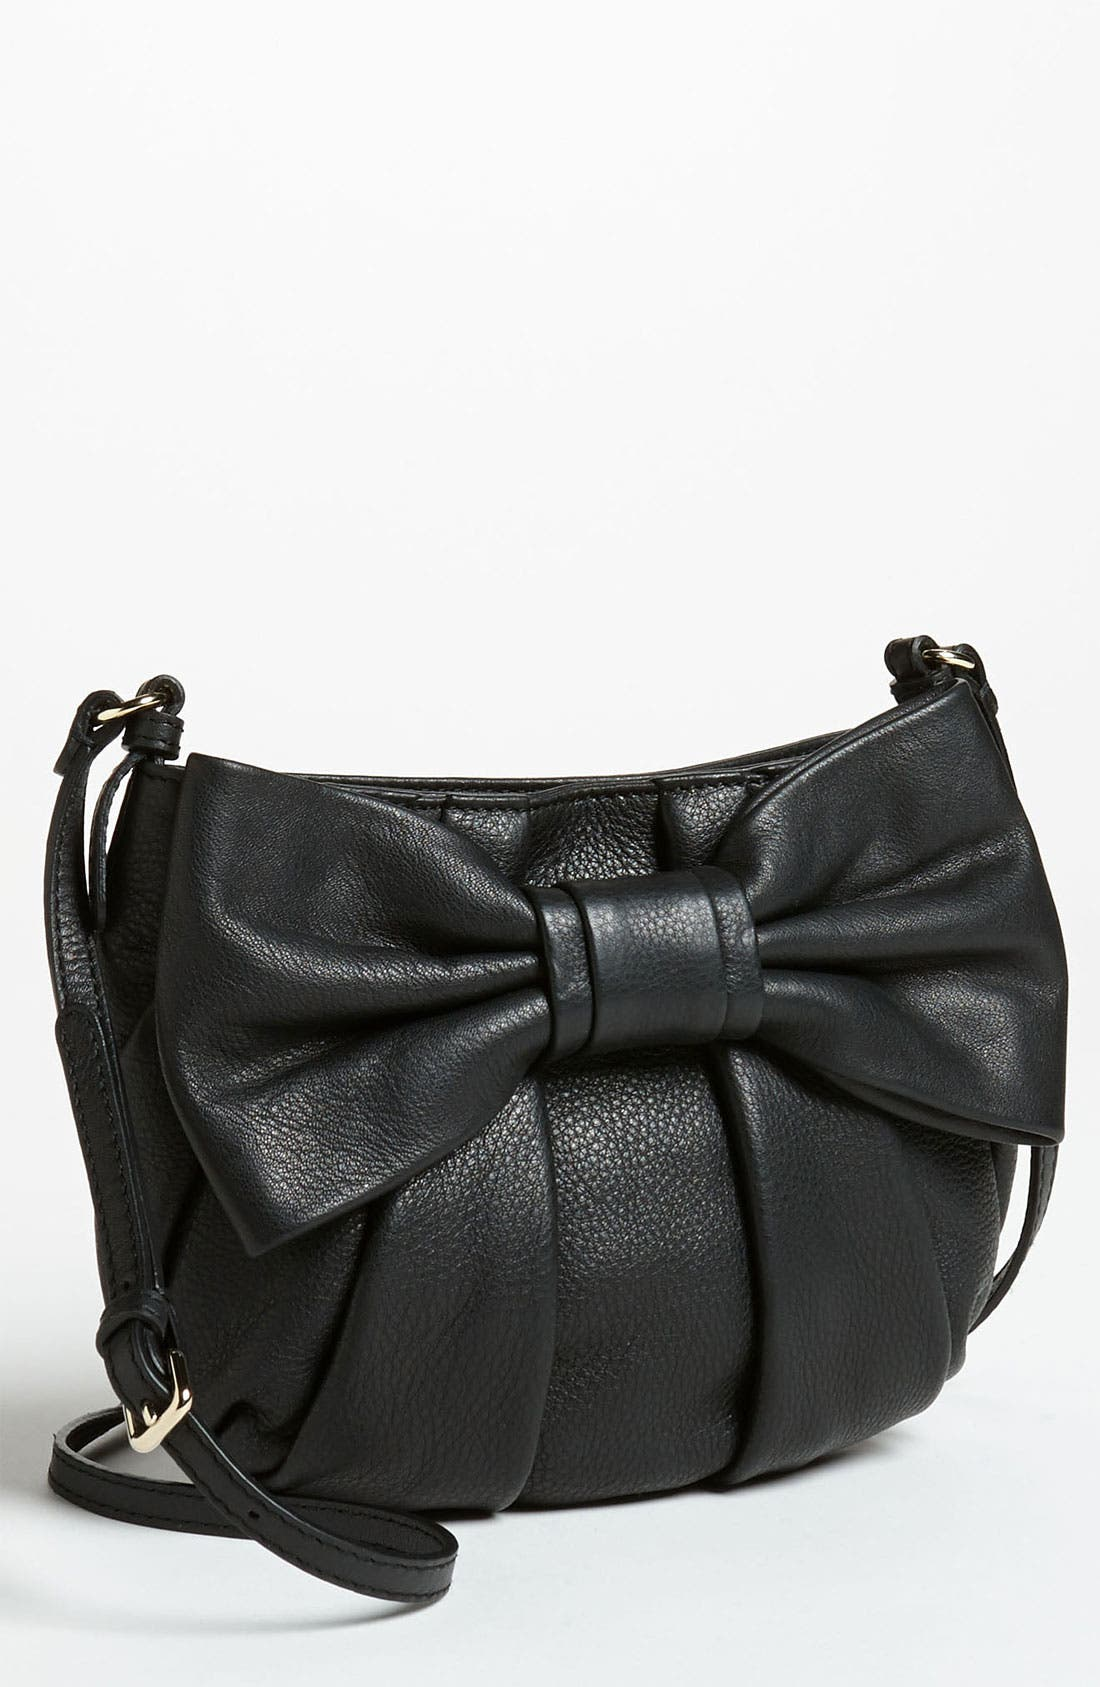 Main Image - RED Valentino 'Bow - Small' Leather Crossbody Bag